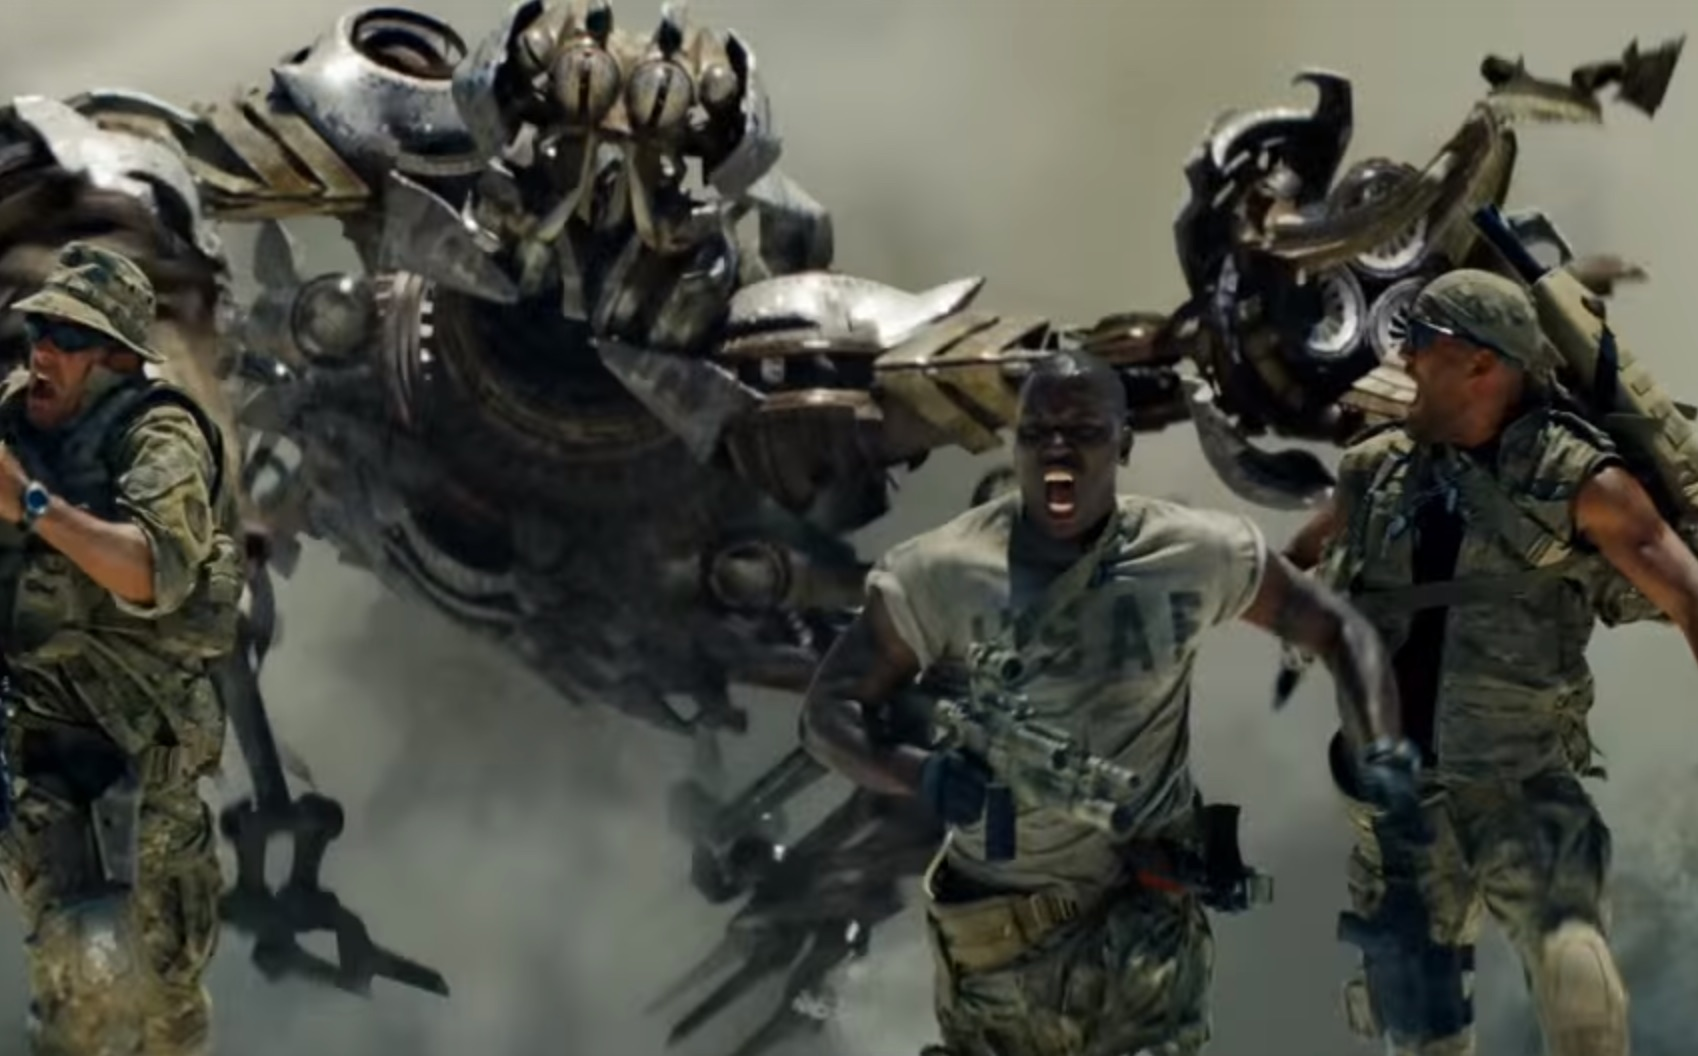 Michael Bay made a sad announcement about the 'Transformers' movies